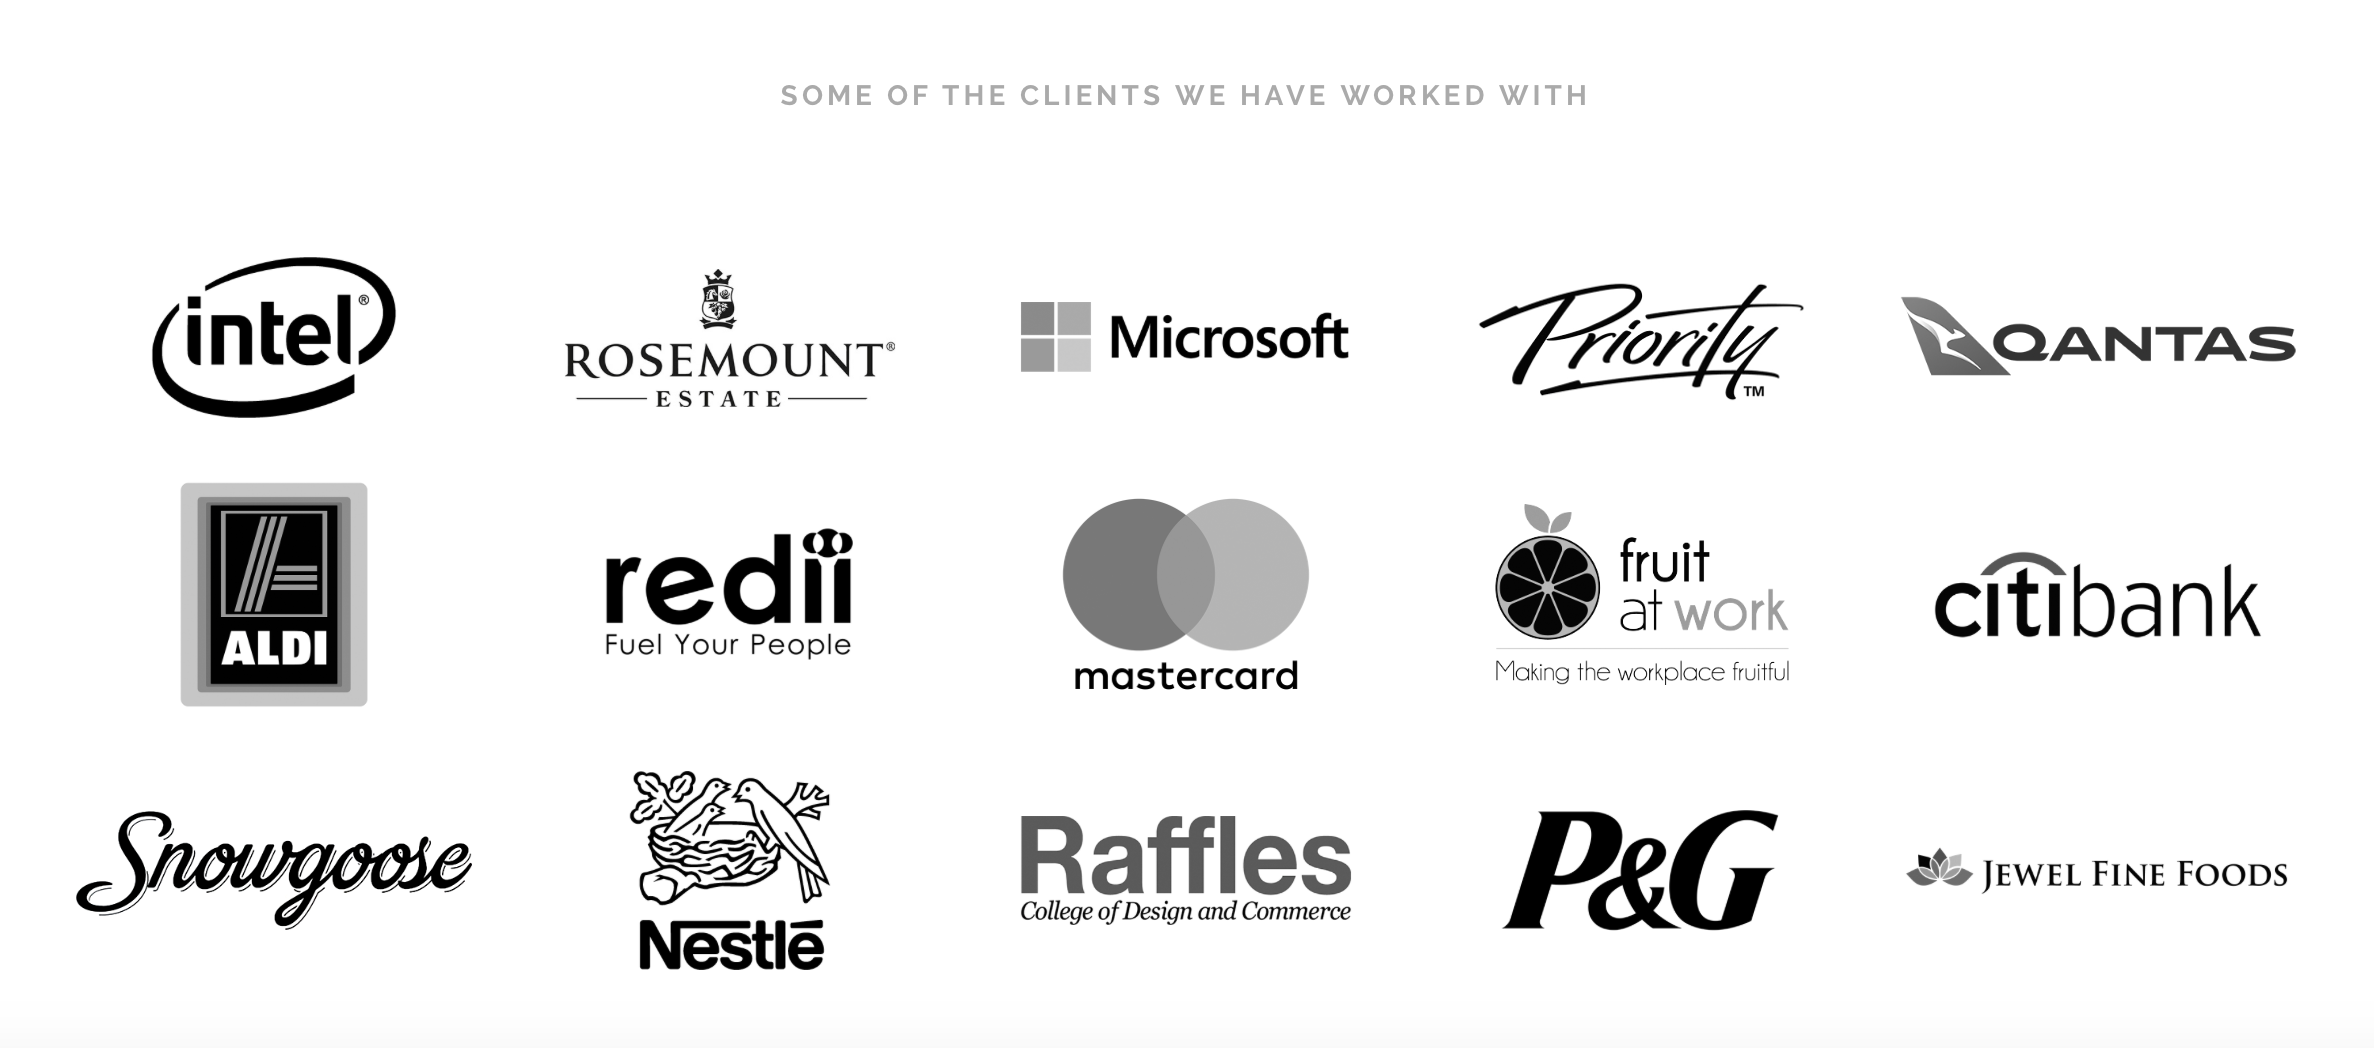 Clients We Have Worked With